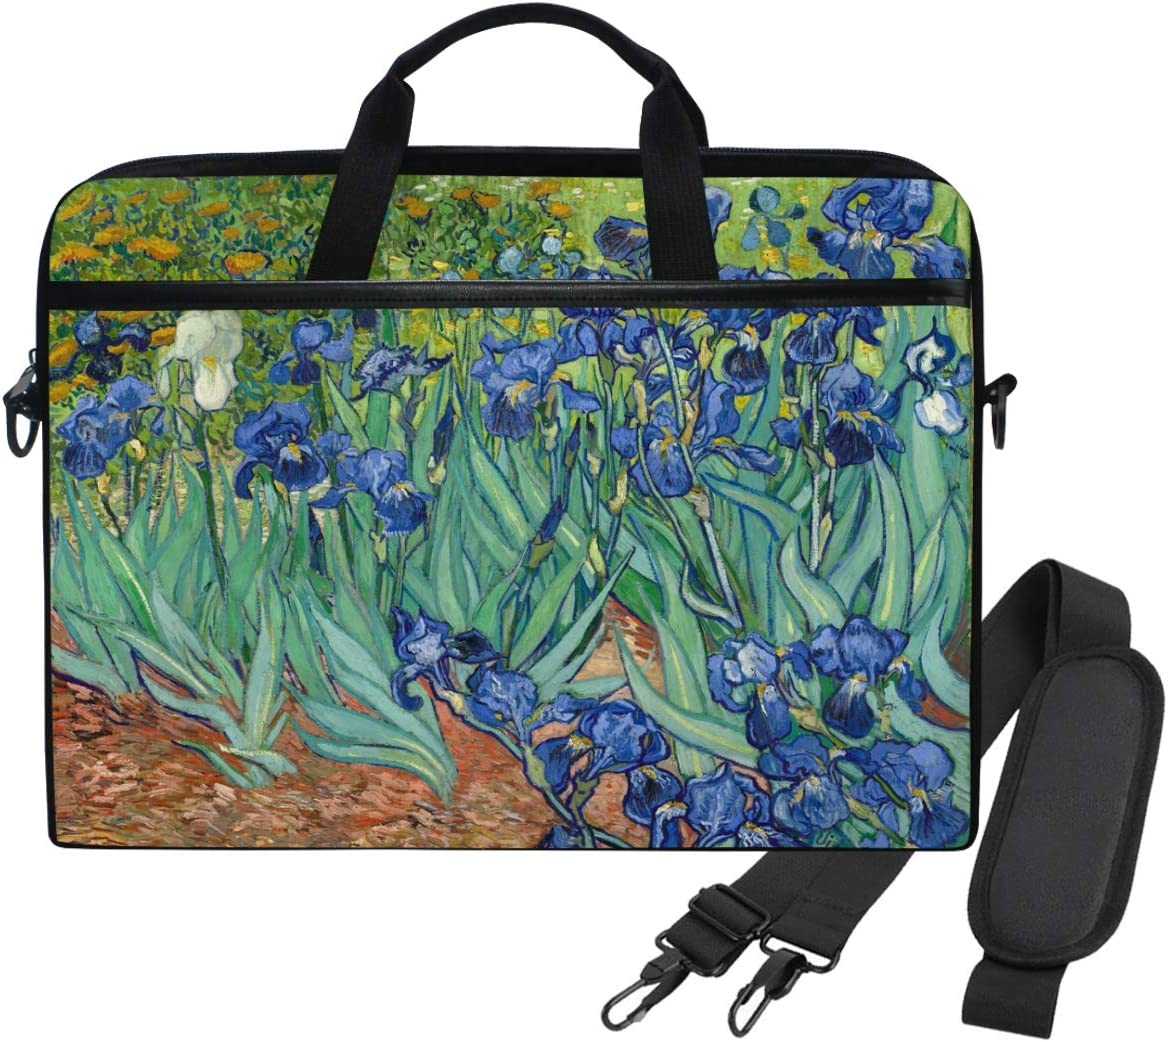 WIHVE Laptop Shoulder Bag Van Gogh Irises 14 13inch Laptop Case for Women Men